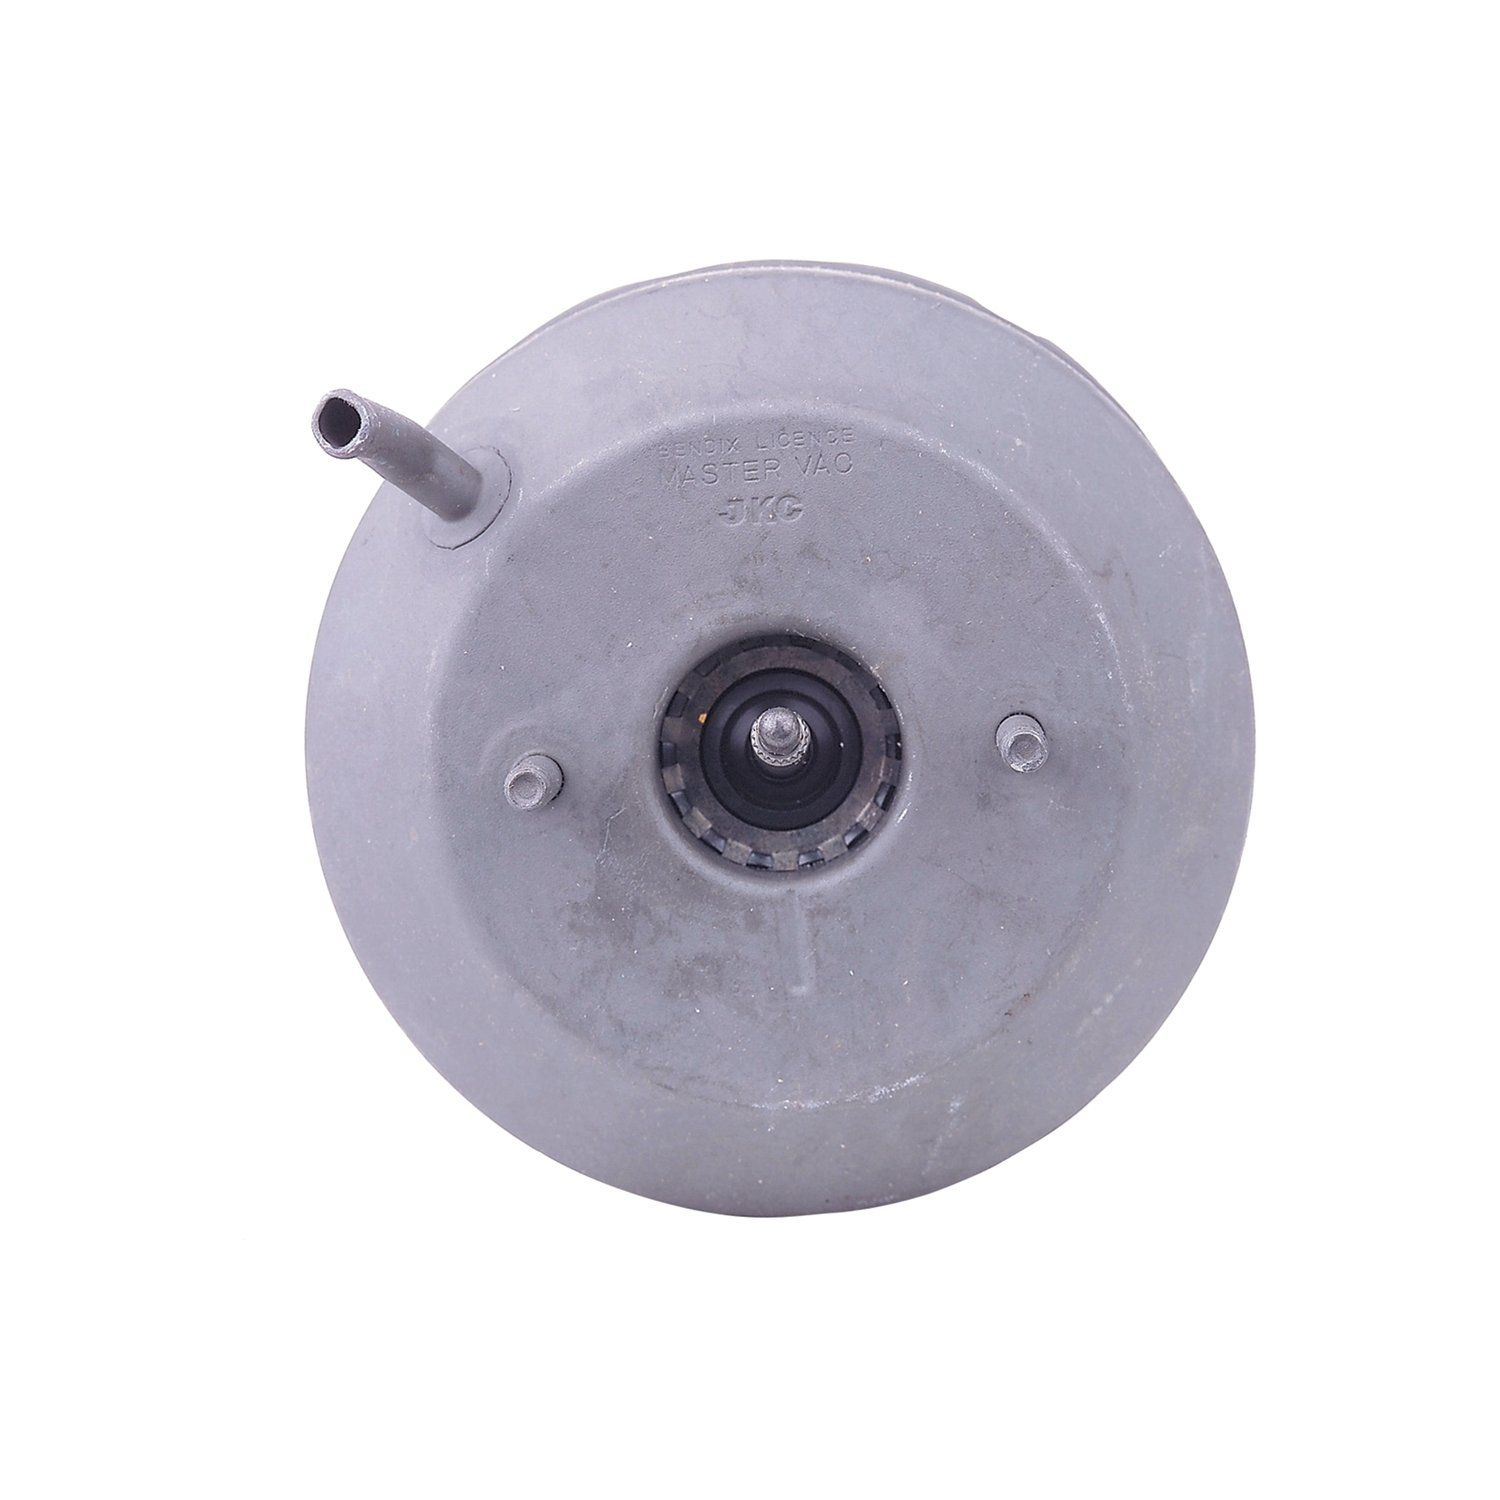 Cardone 53-2320 Remanufactured Import Power Brake Booster A1 ...